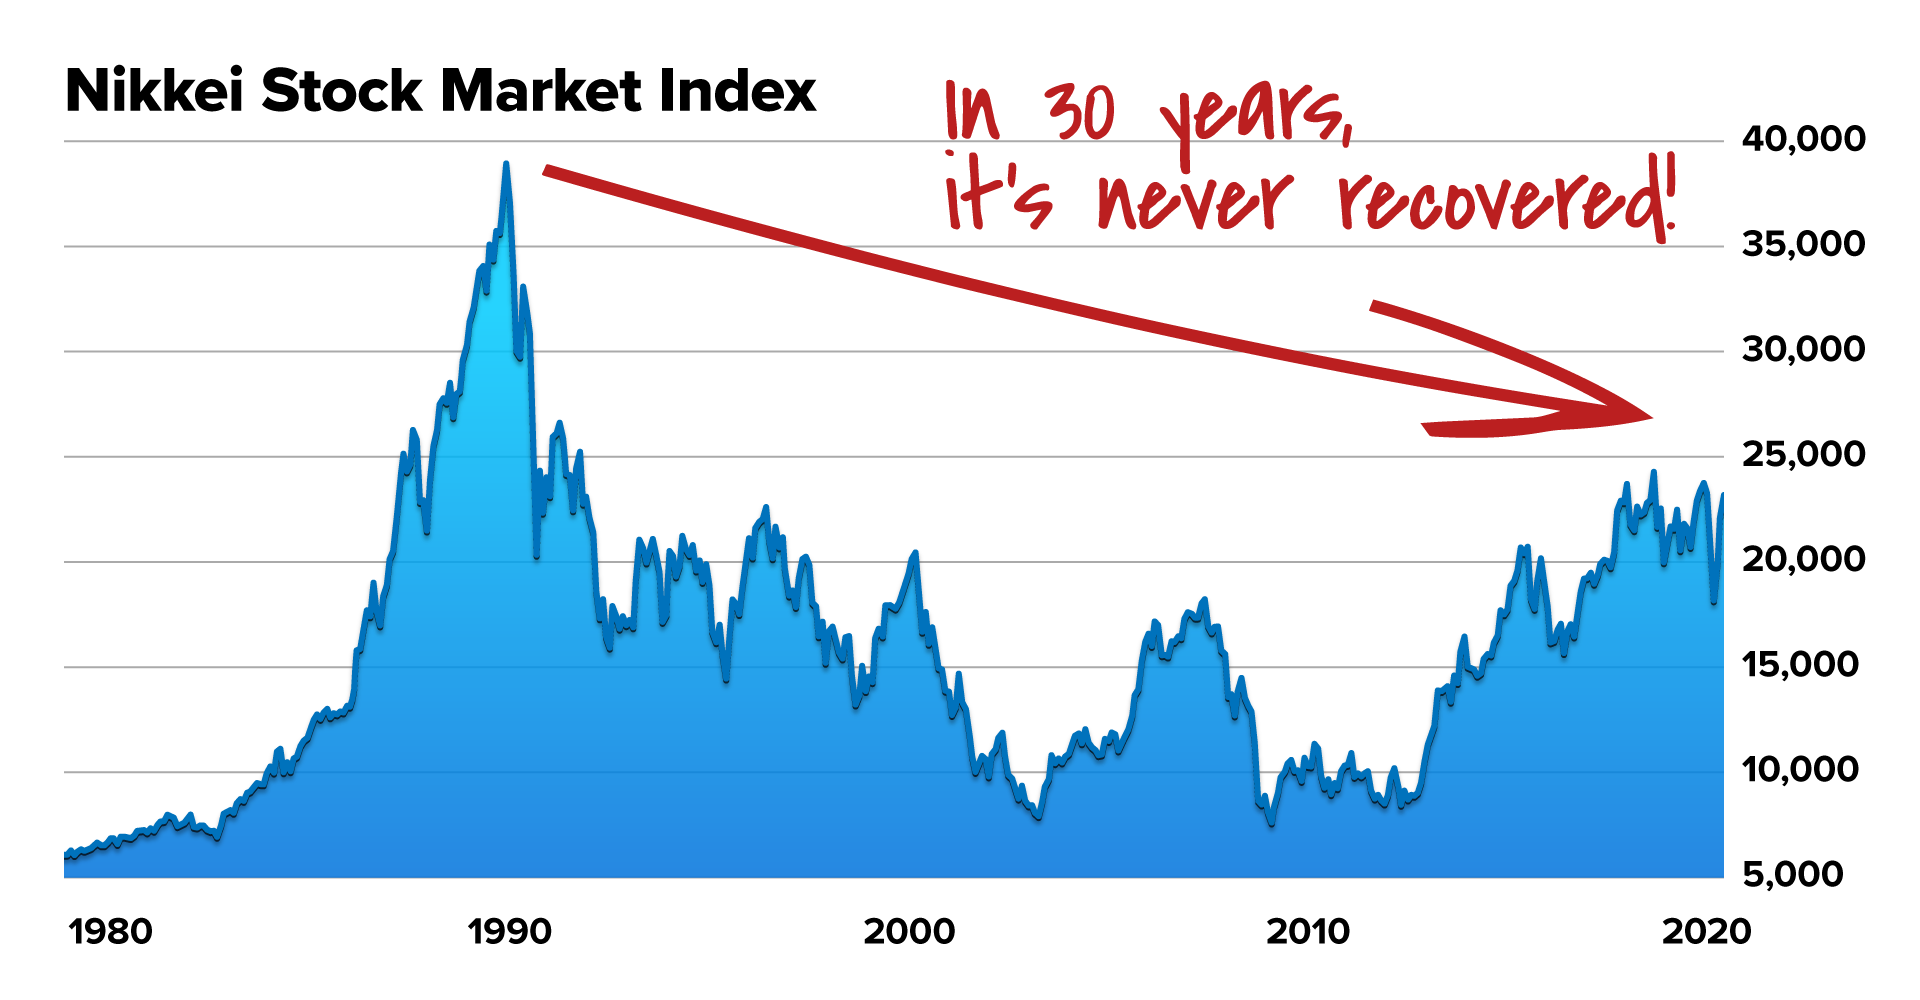 NIKKEI 29 years no recovery